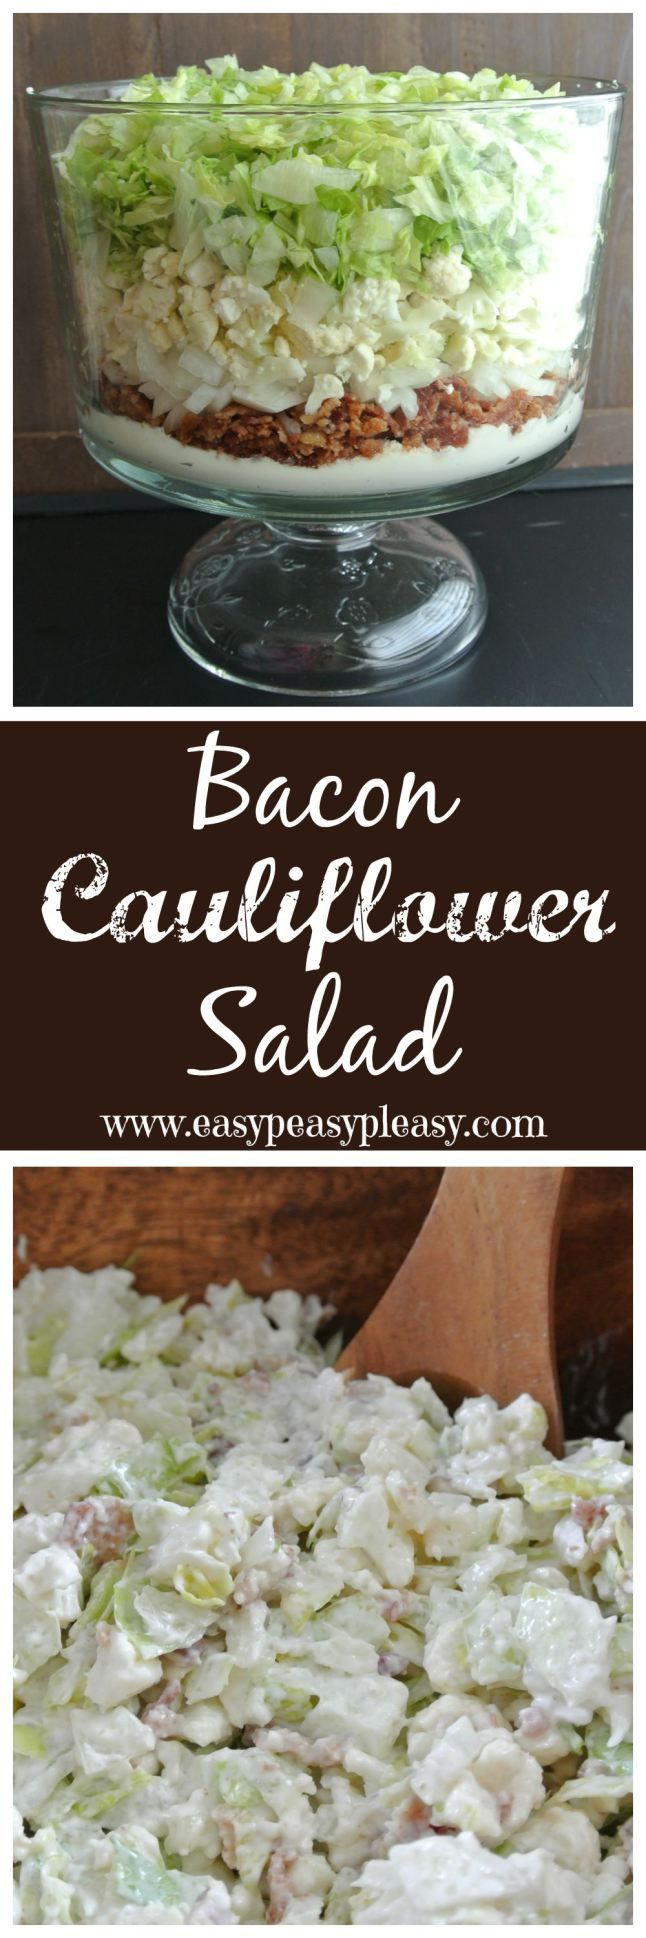 My husband isn't a cauliflower fan but he devours this salad! Bacon Cauliflower Salad is the perfect dish for your next cookout, potluck, or holiday. This salad will feed a crowd and is so delicious!